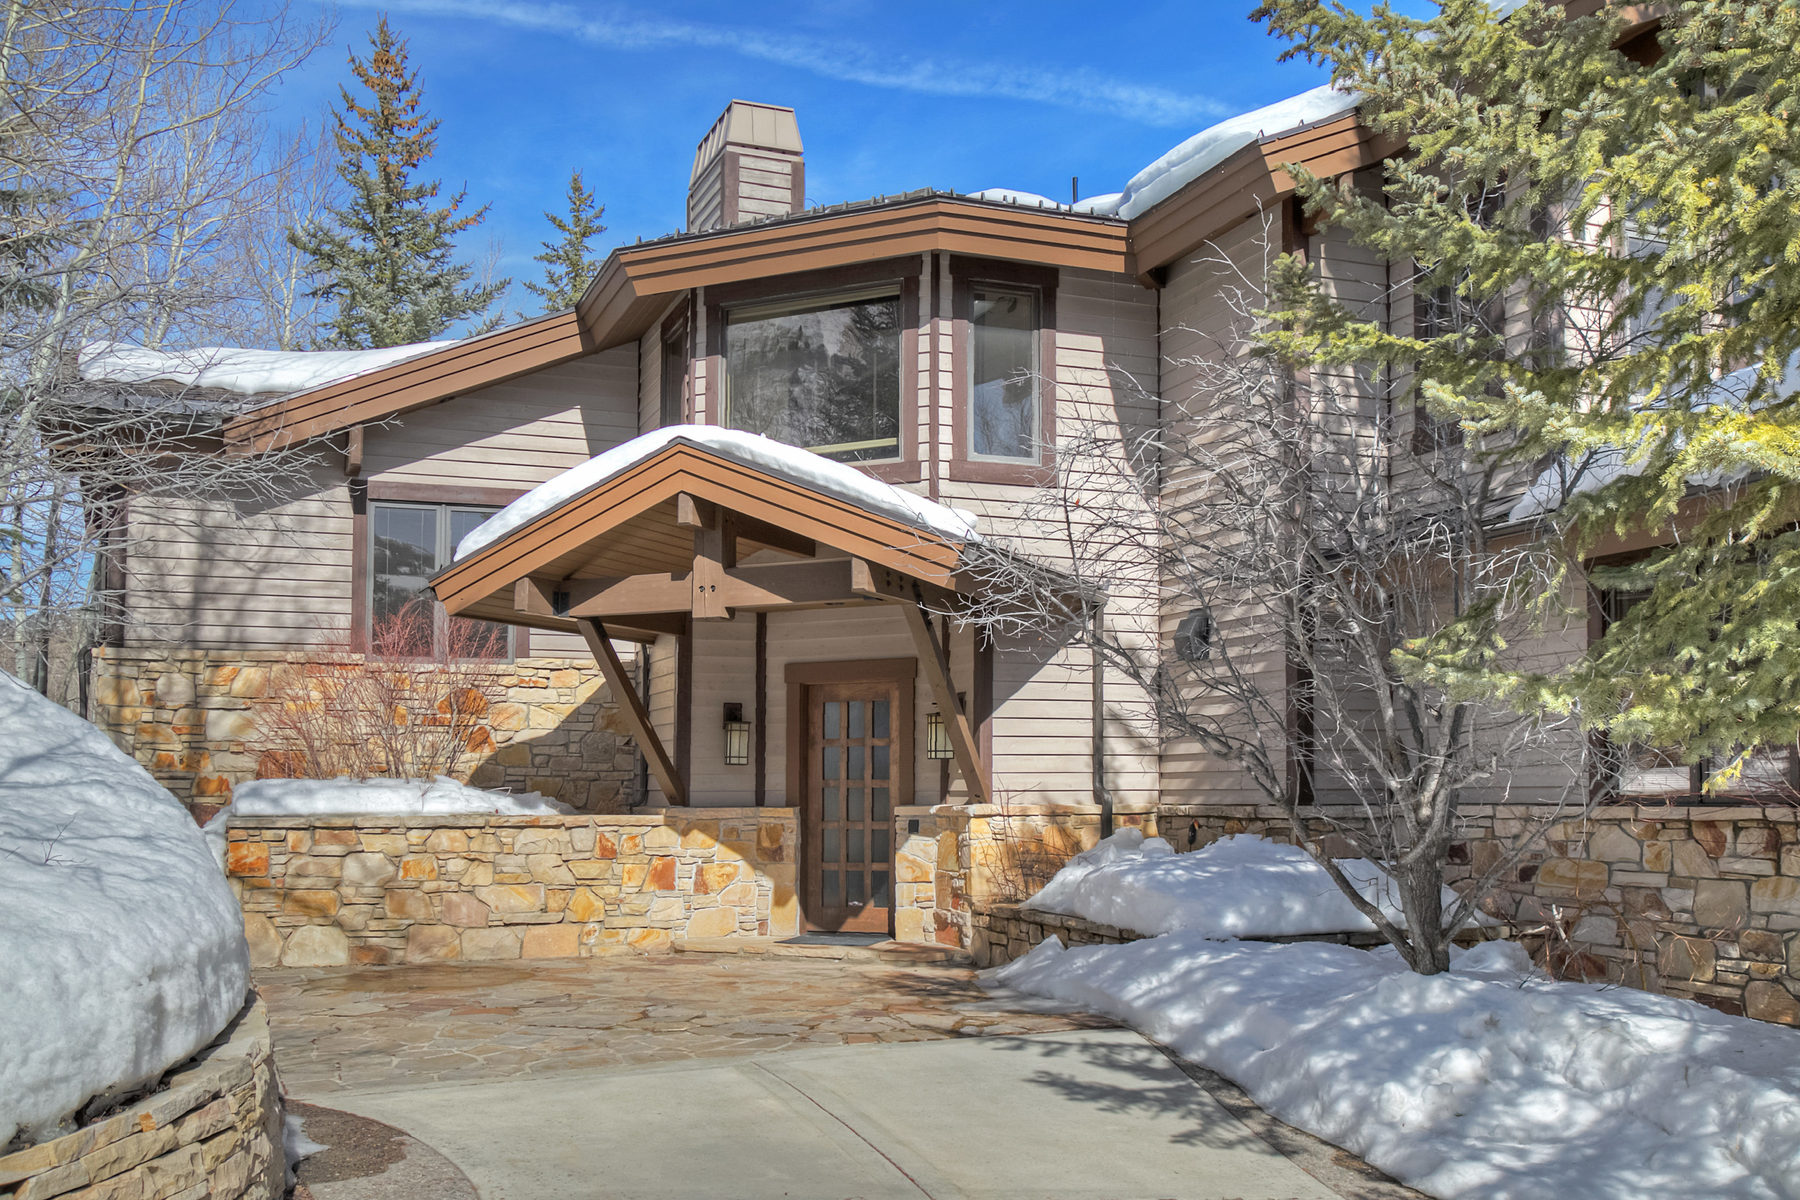 Casa Unifamiliar por un Venta en Perfect Combination of Outstanding Materials and Craftsmanship 2418 Iron Mountain Dr Park City, Utah, 84060 Estados Unidos